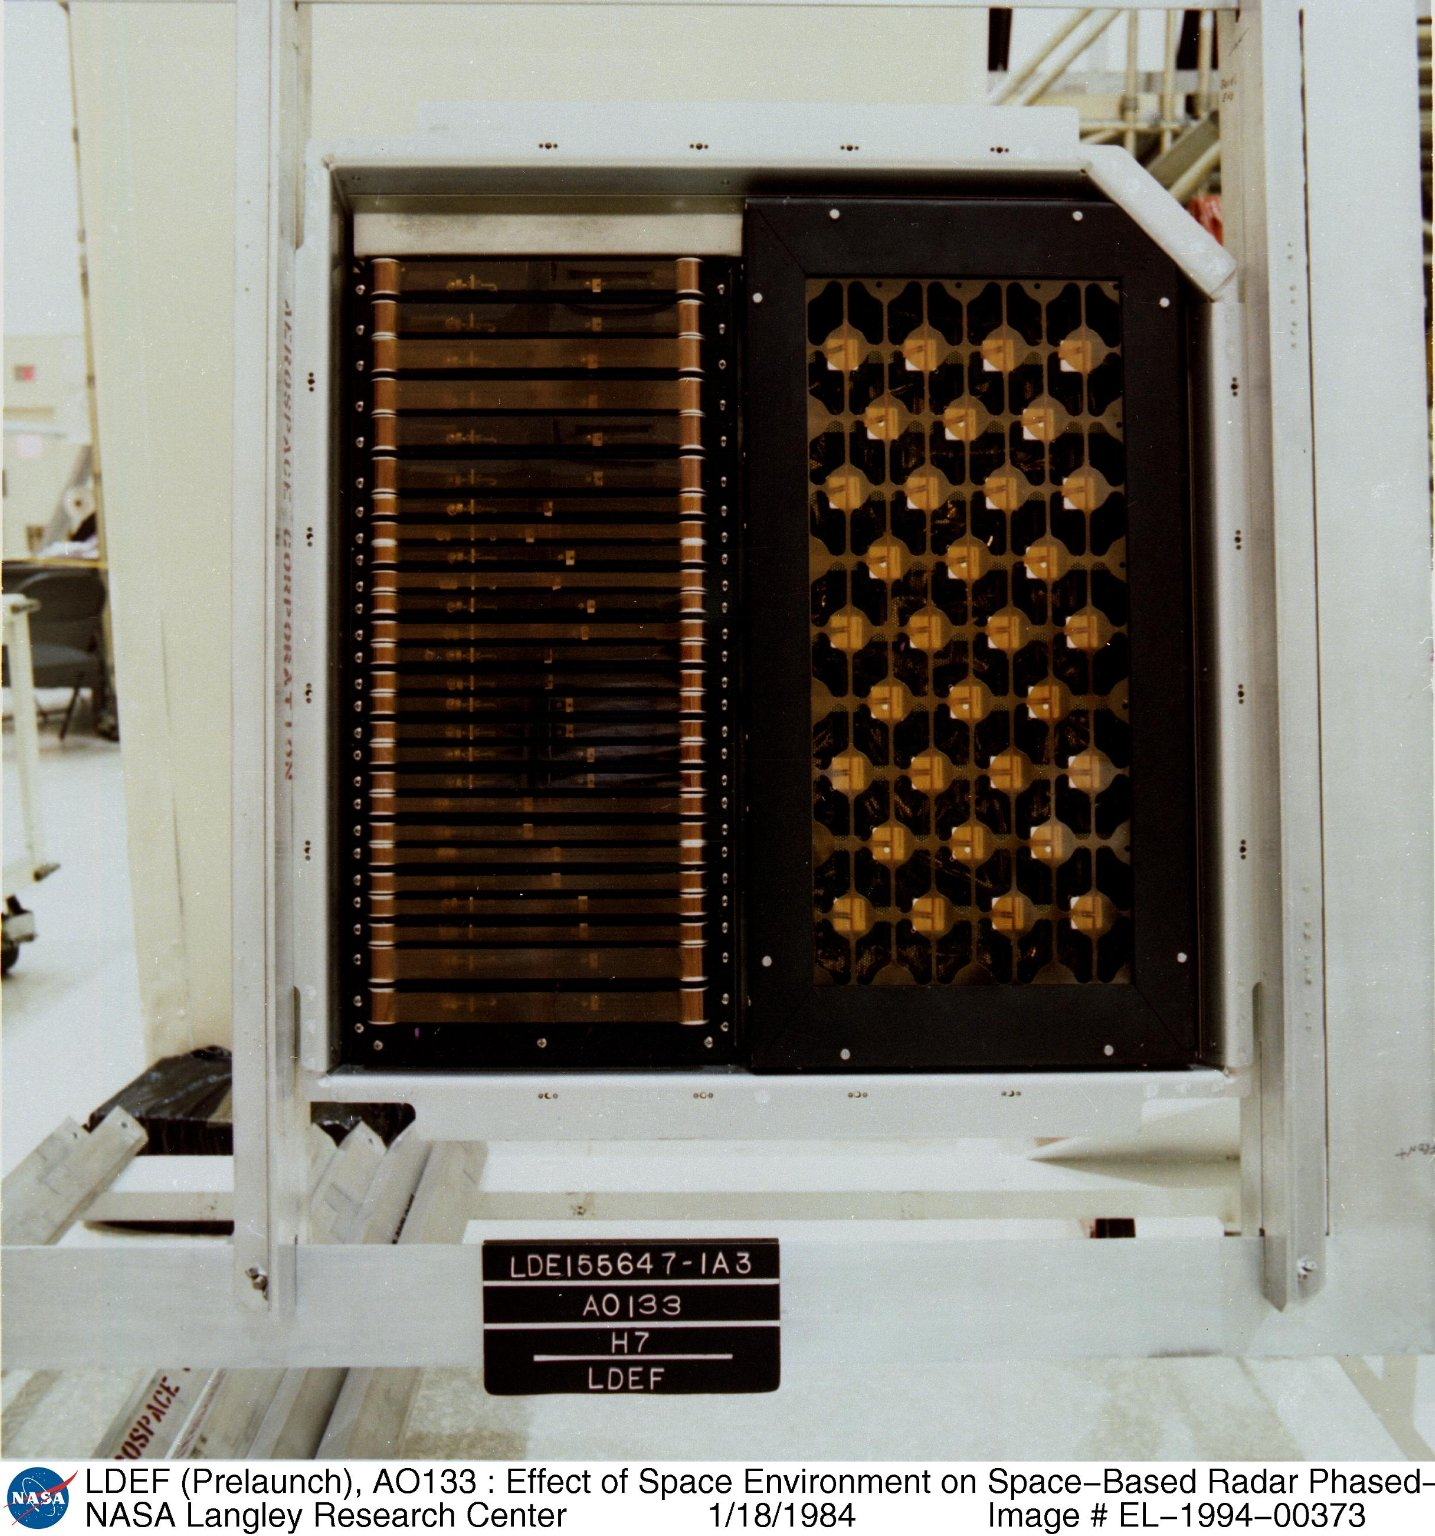 LDEF (Prelaunch), AO133 : Effect of Space Environment on Space-Based Radar Phased-Array Antenna, Tra